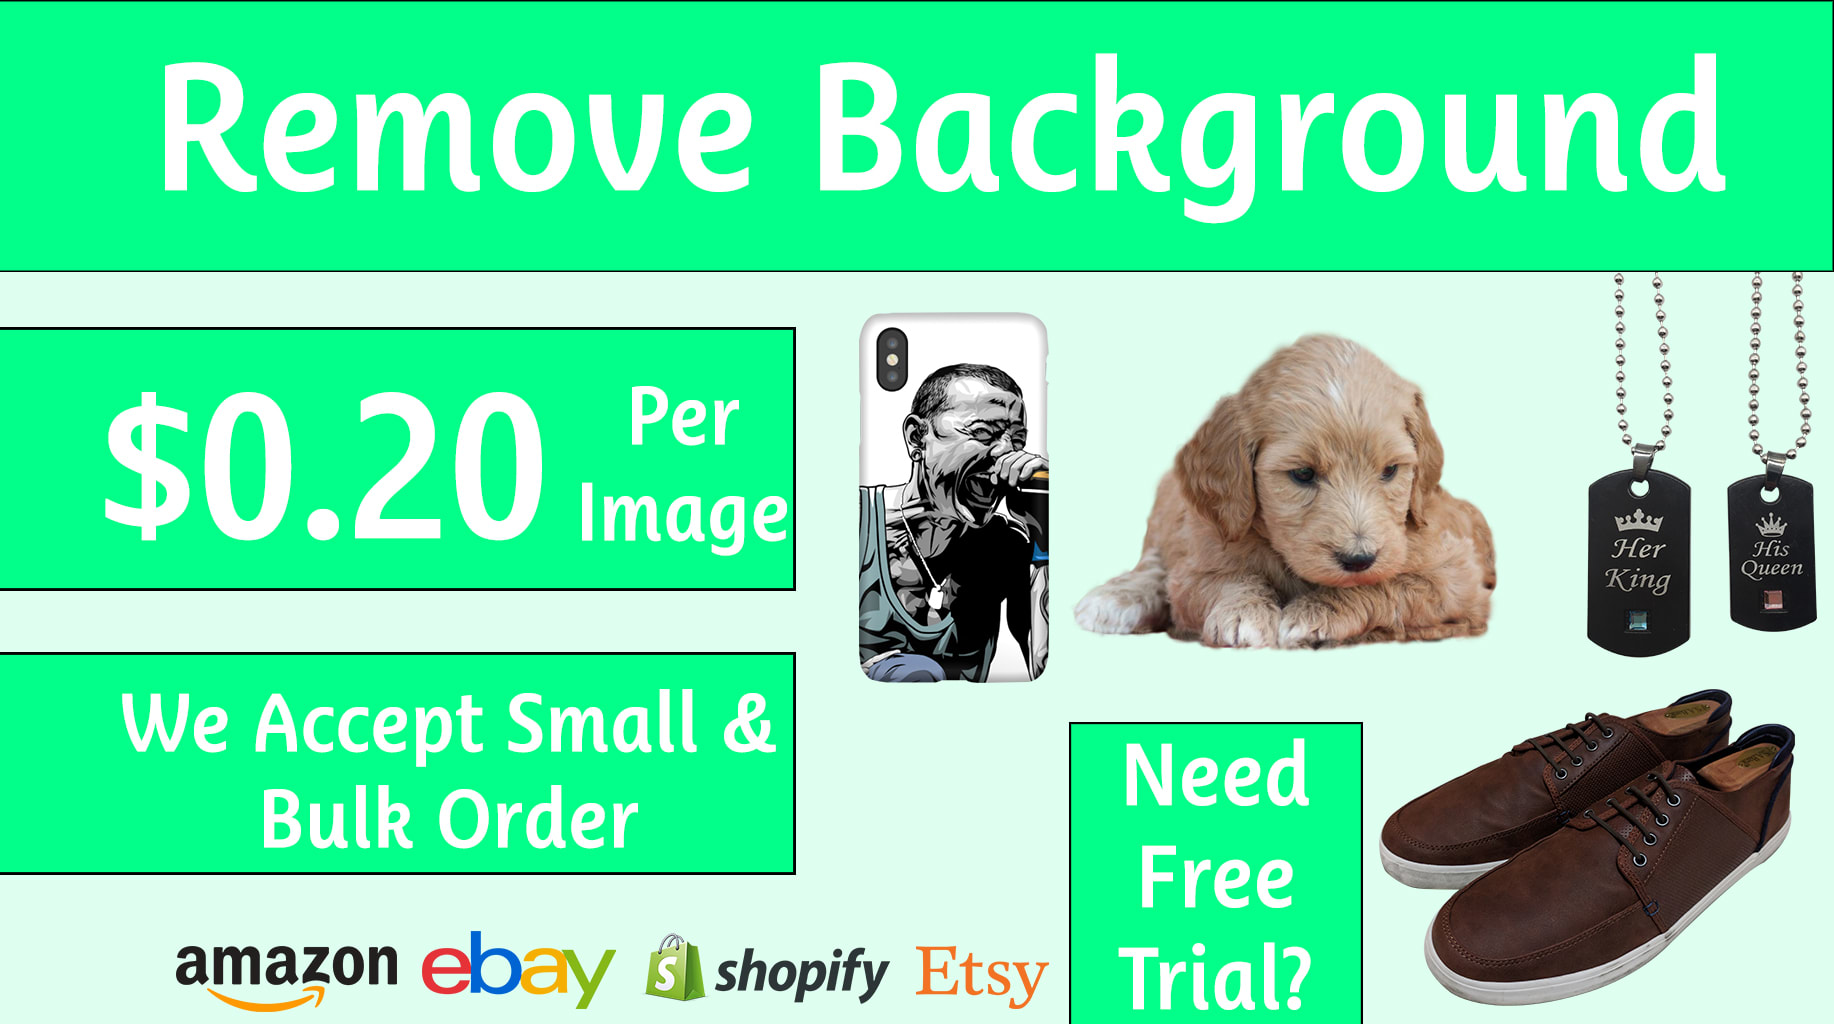 do background removal or photo editing any image